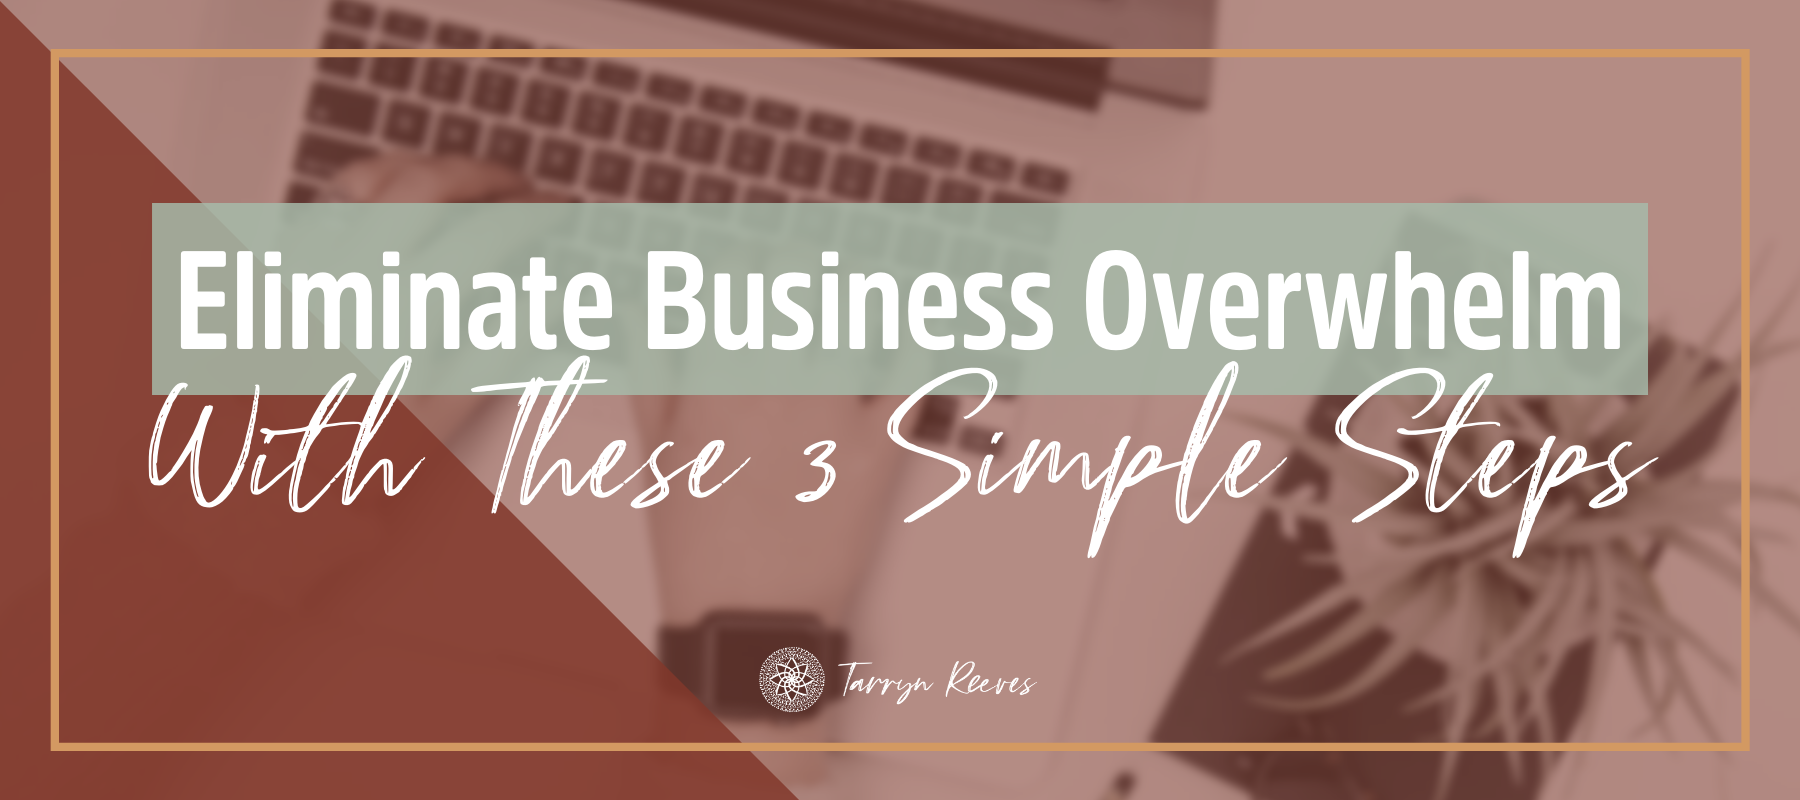 Eliminate Business Overwhelm With These 3 Simple Steps